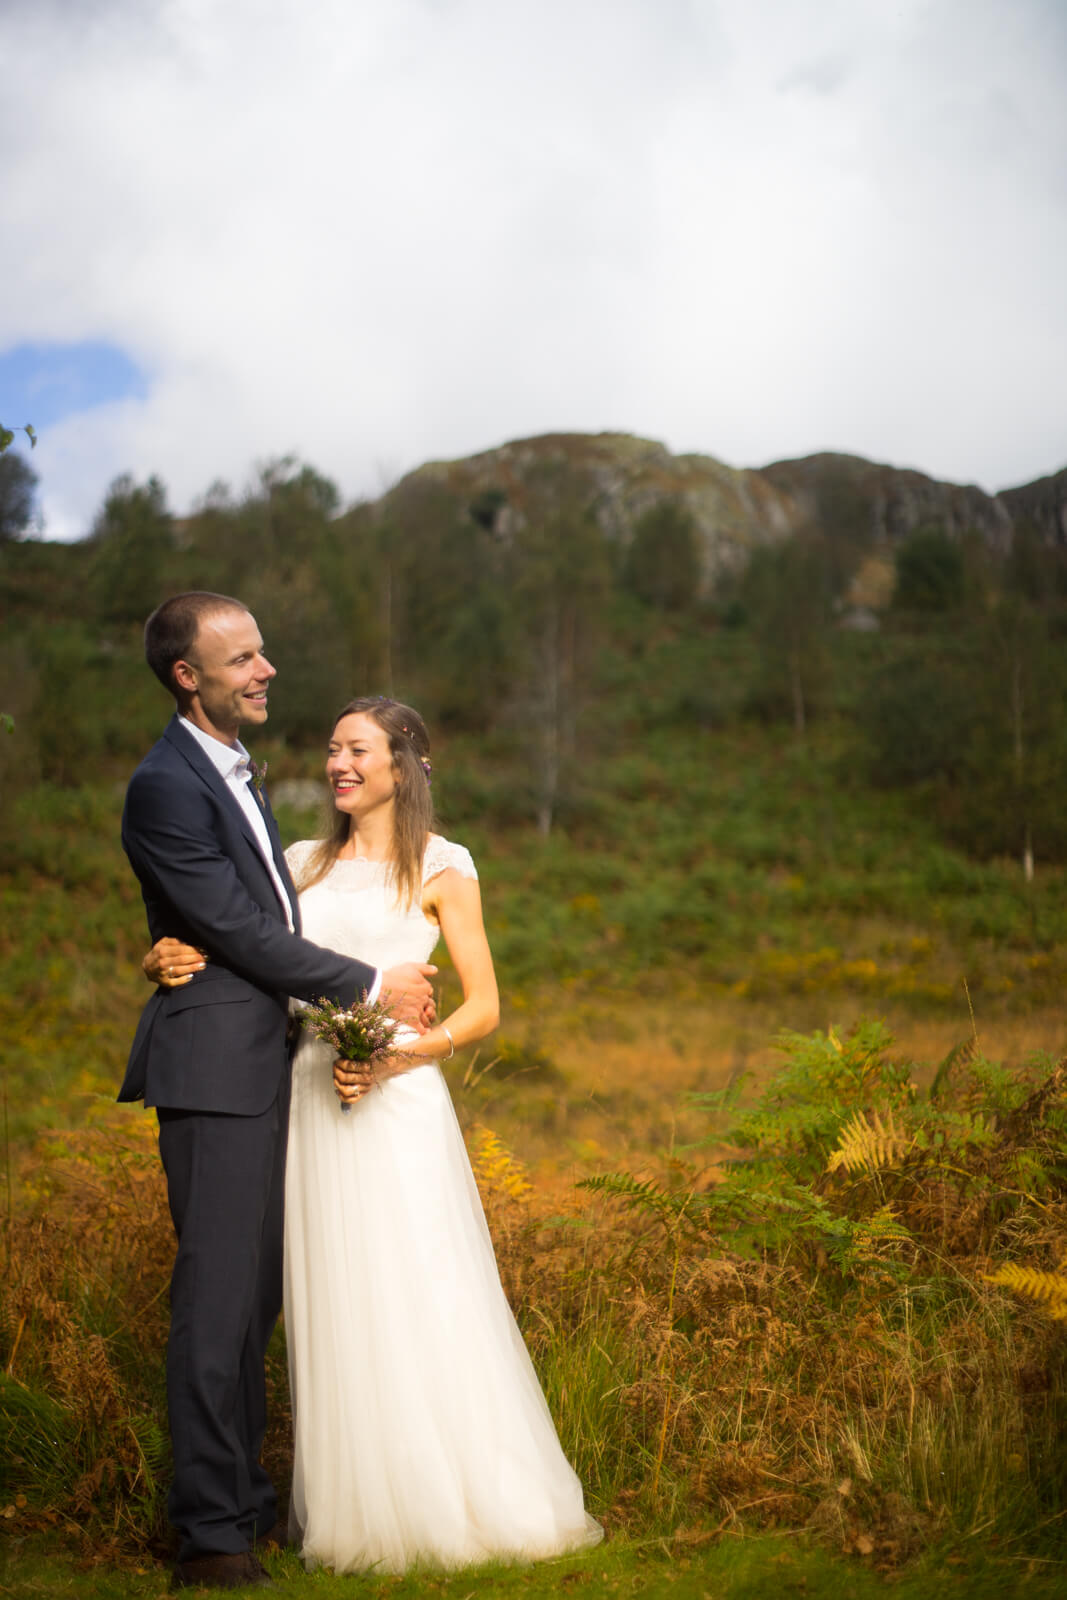 Bride and groom against background of hills and autumn bracken